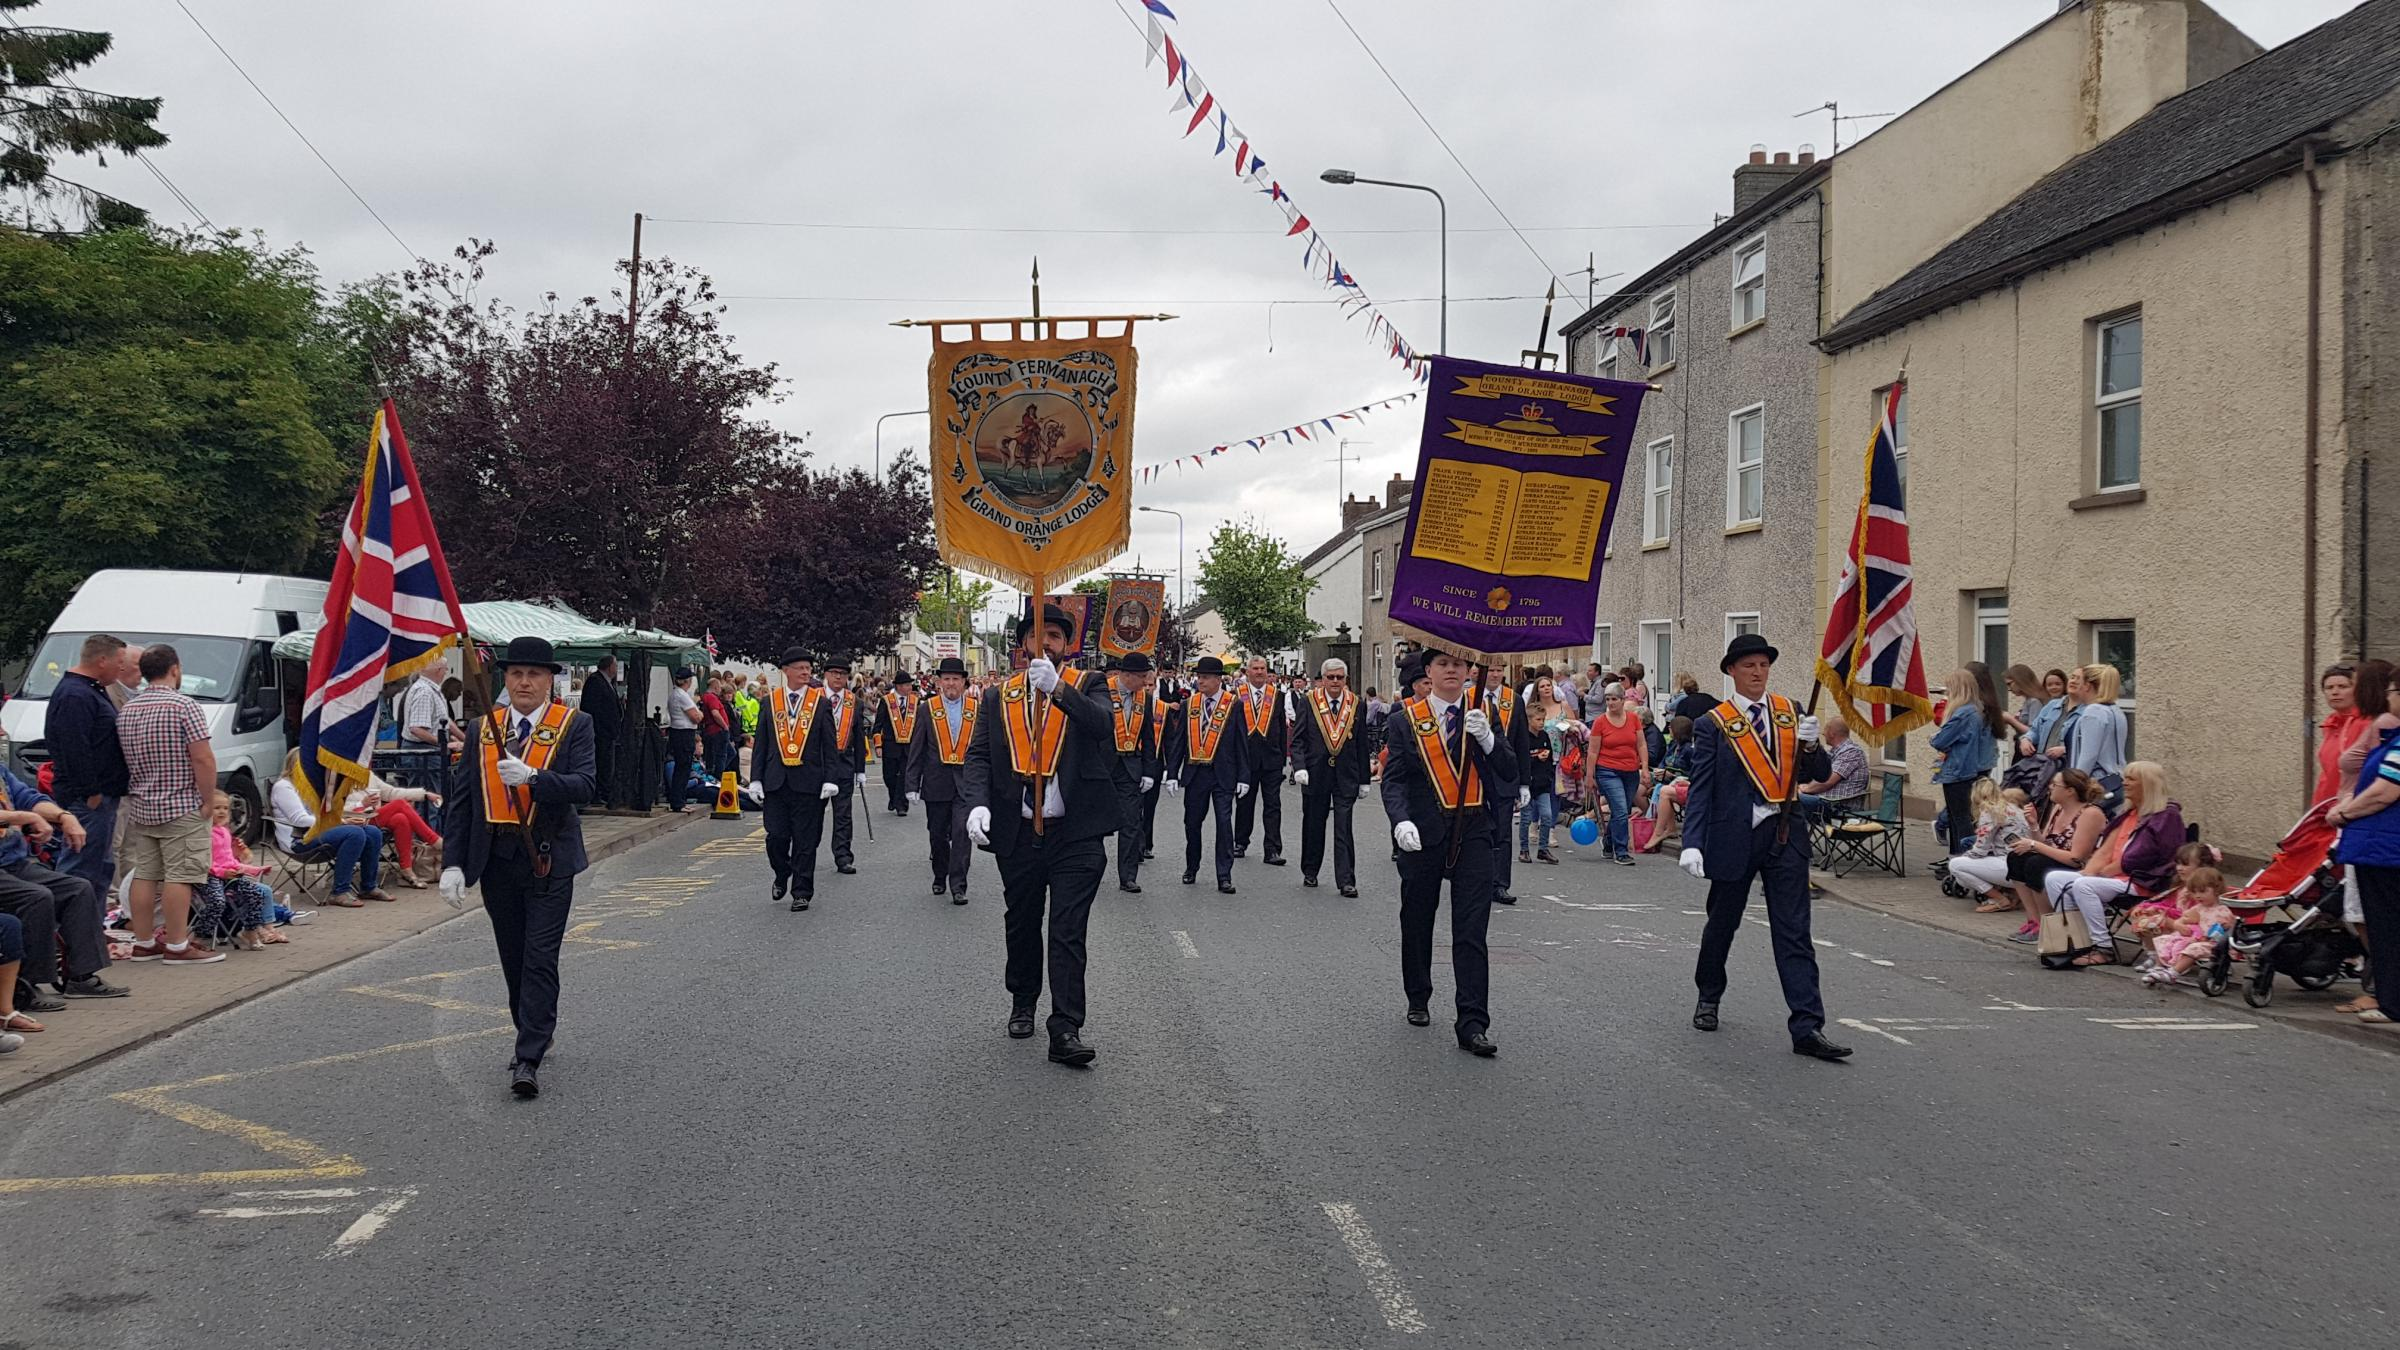 Thousands watch Twelfth celebrations in Brookeborough